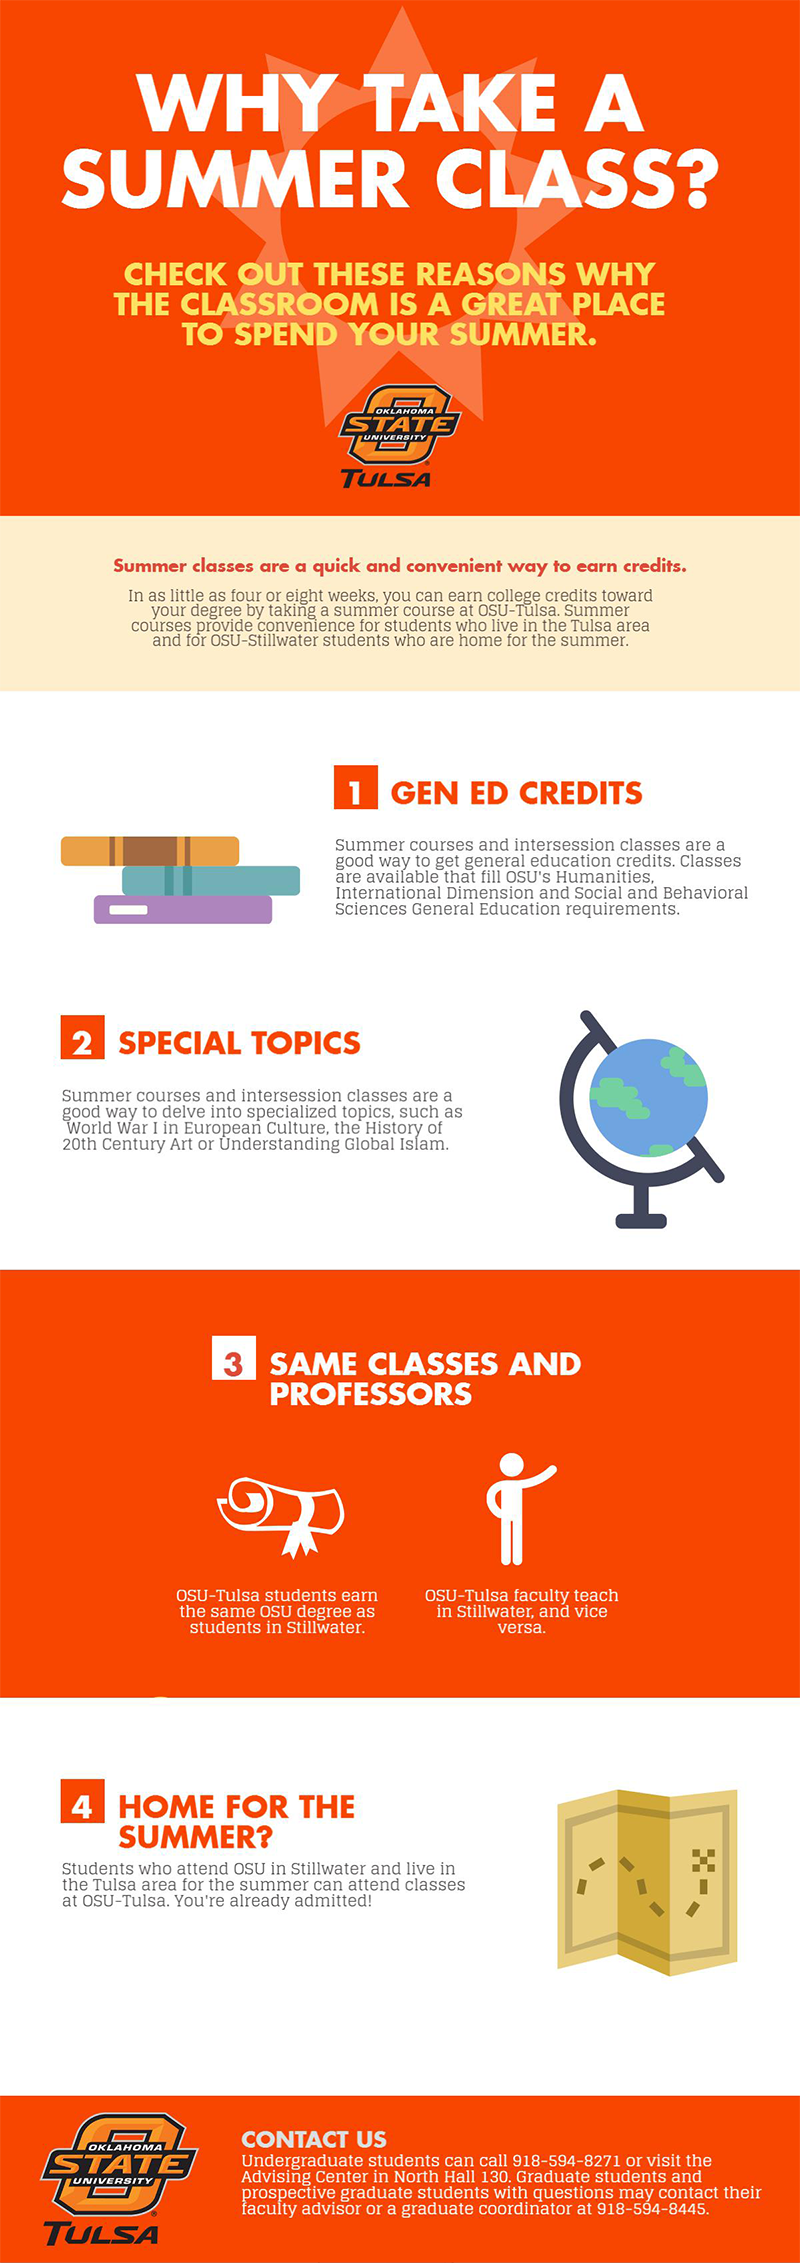 Why take a summer class infographic